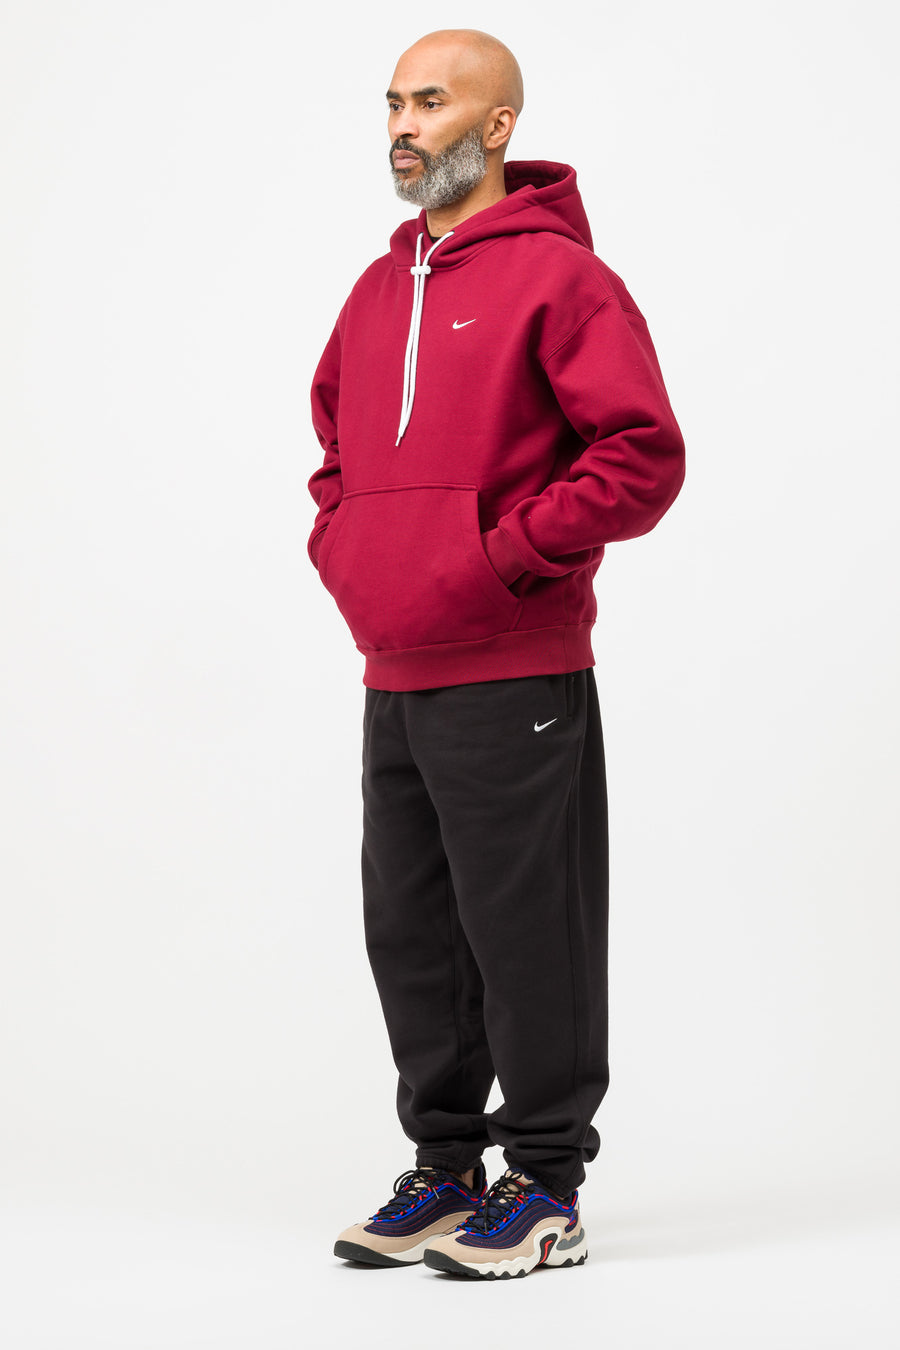 Nike Hoodie in Team Red - Notre